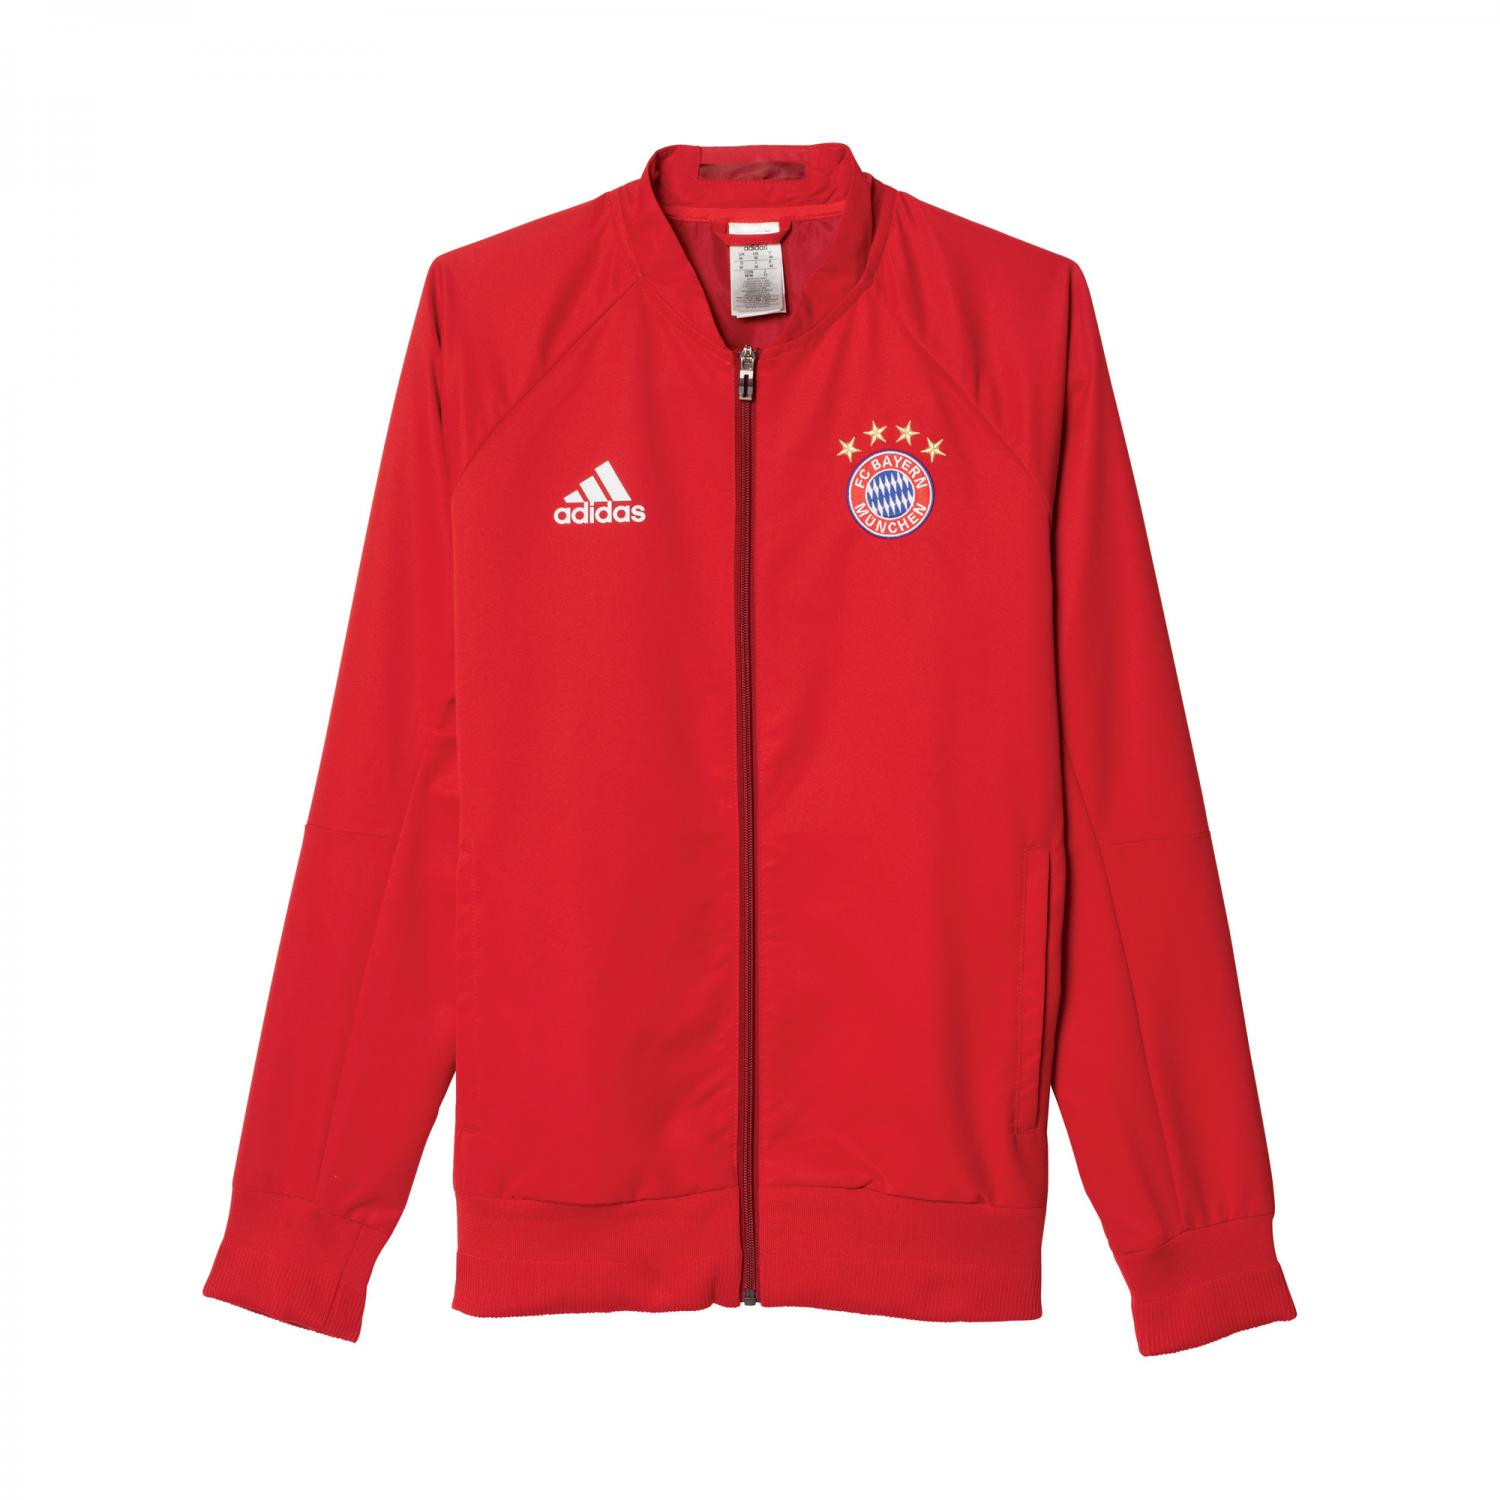 adidas herren fc bayern woven anthem jacke. Black Bedroom Furniture Sets. Home Design Ideas